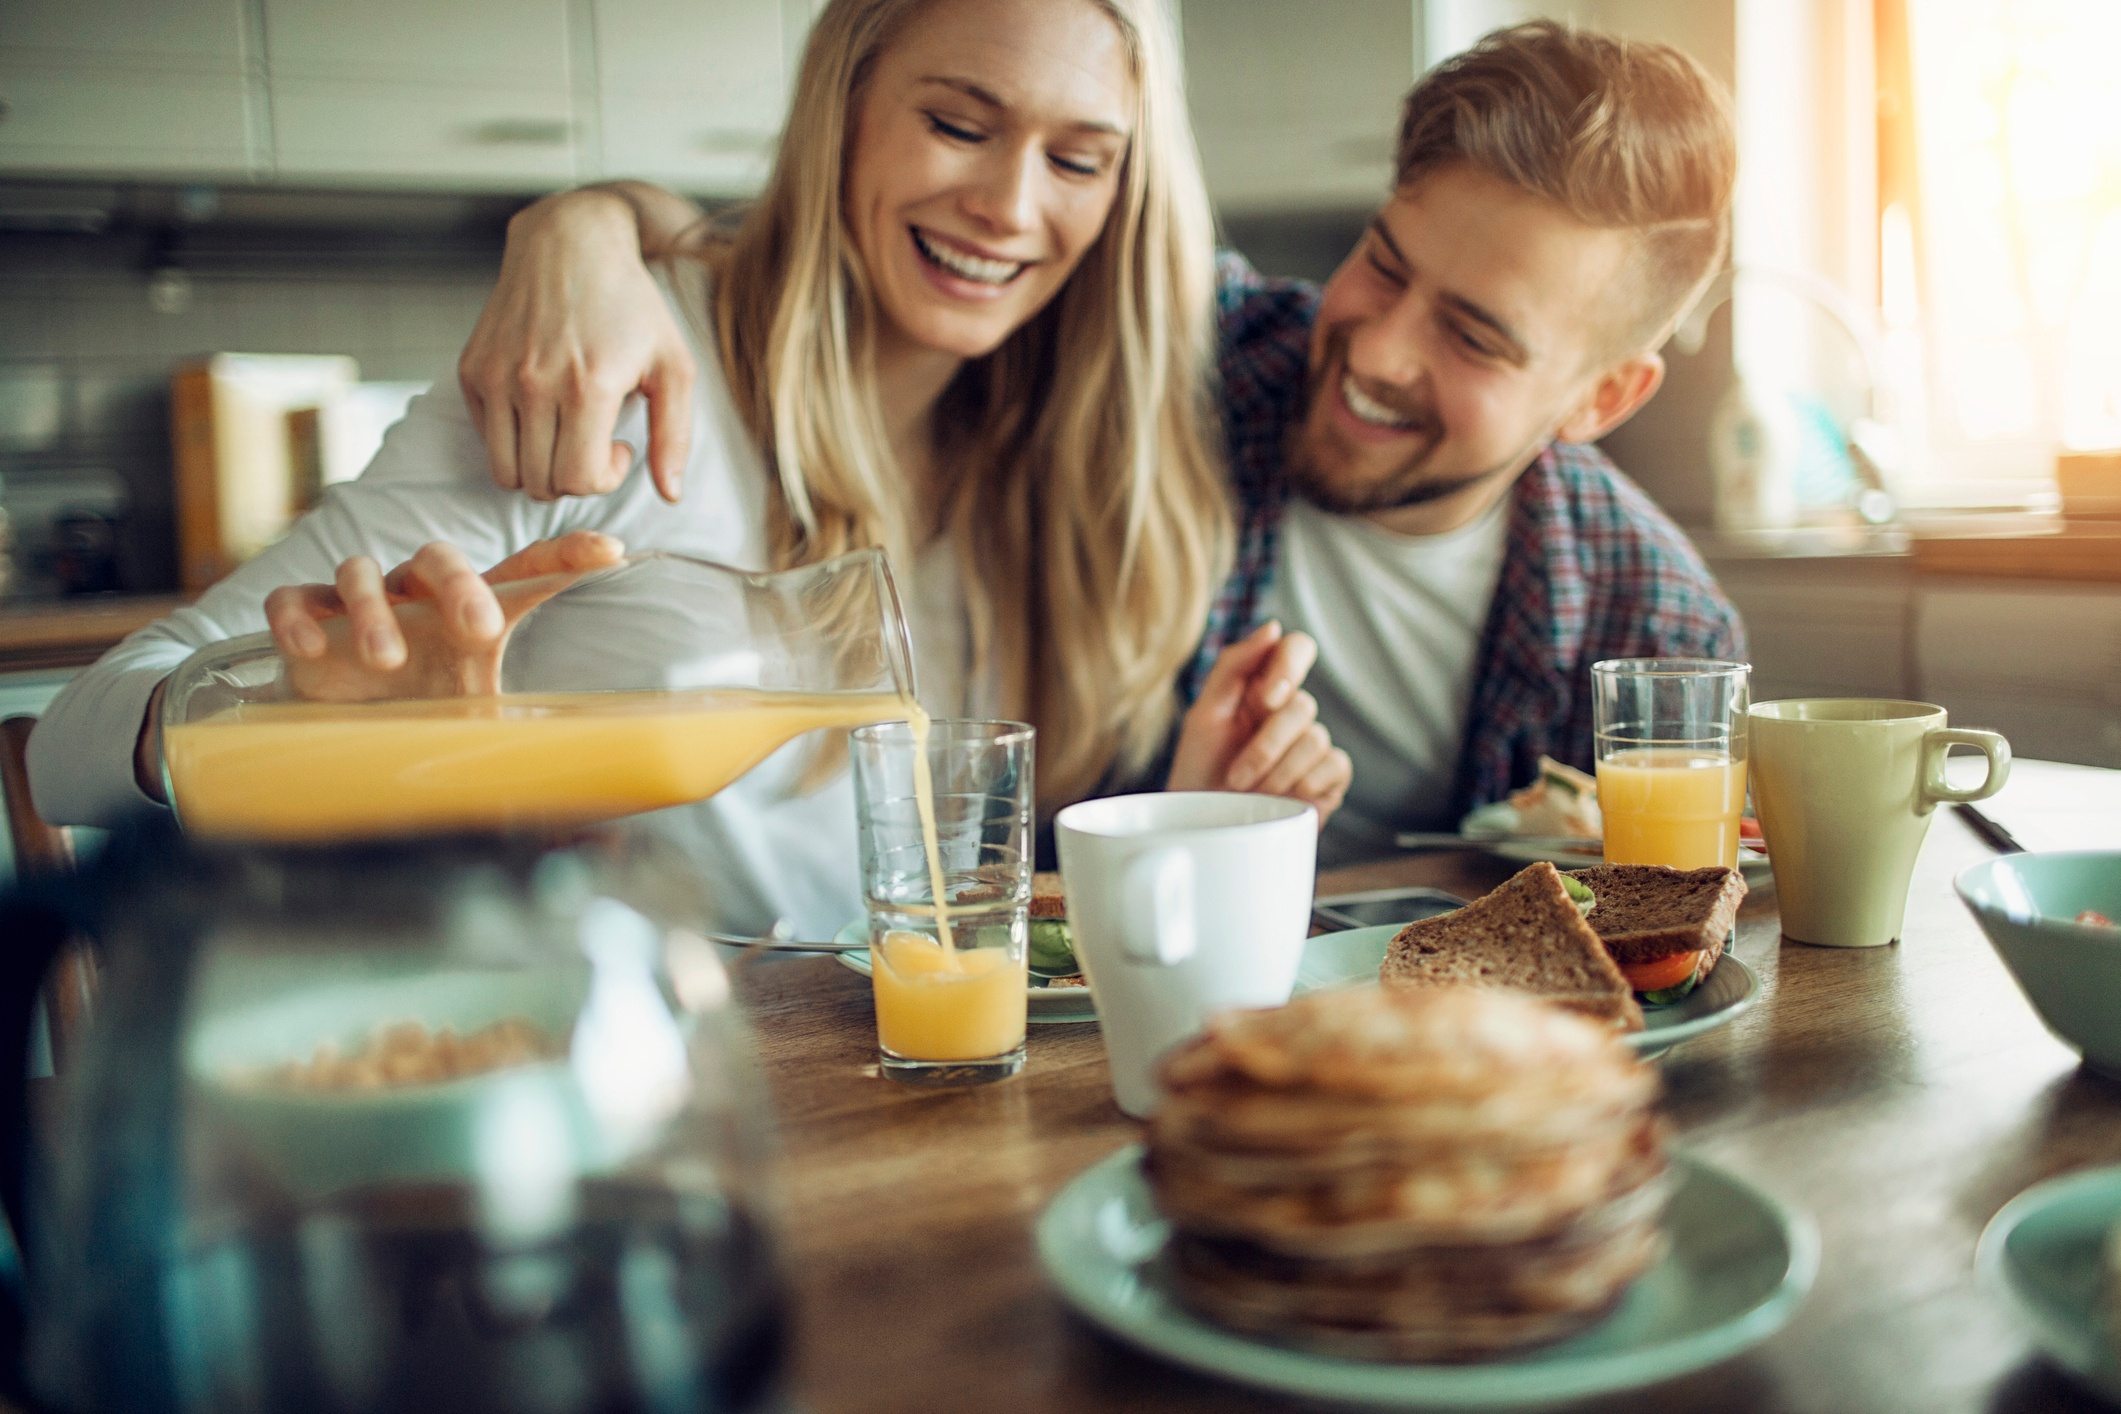 Young couple having breakfast together laughing